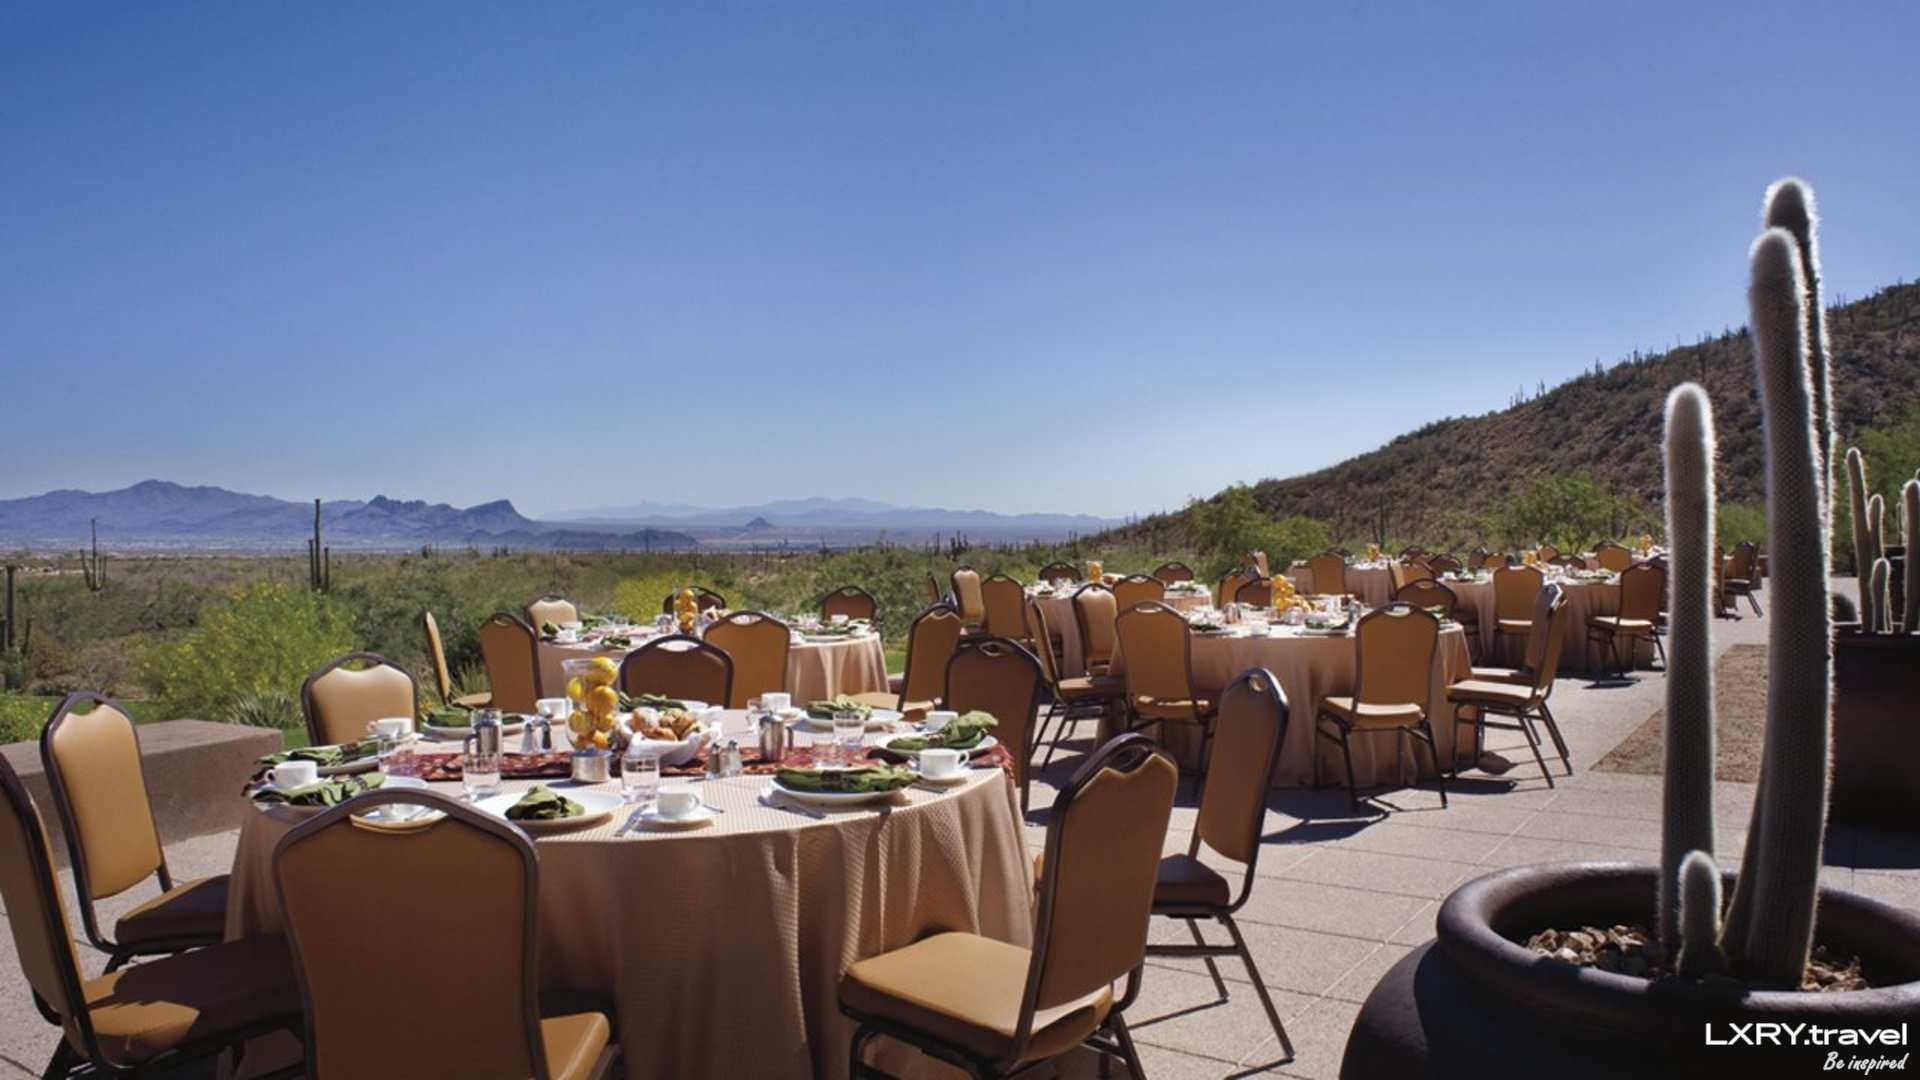 The Ritz-Carlton, Dove Mountain 29/56